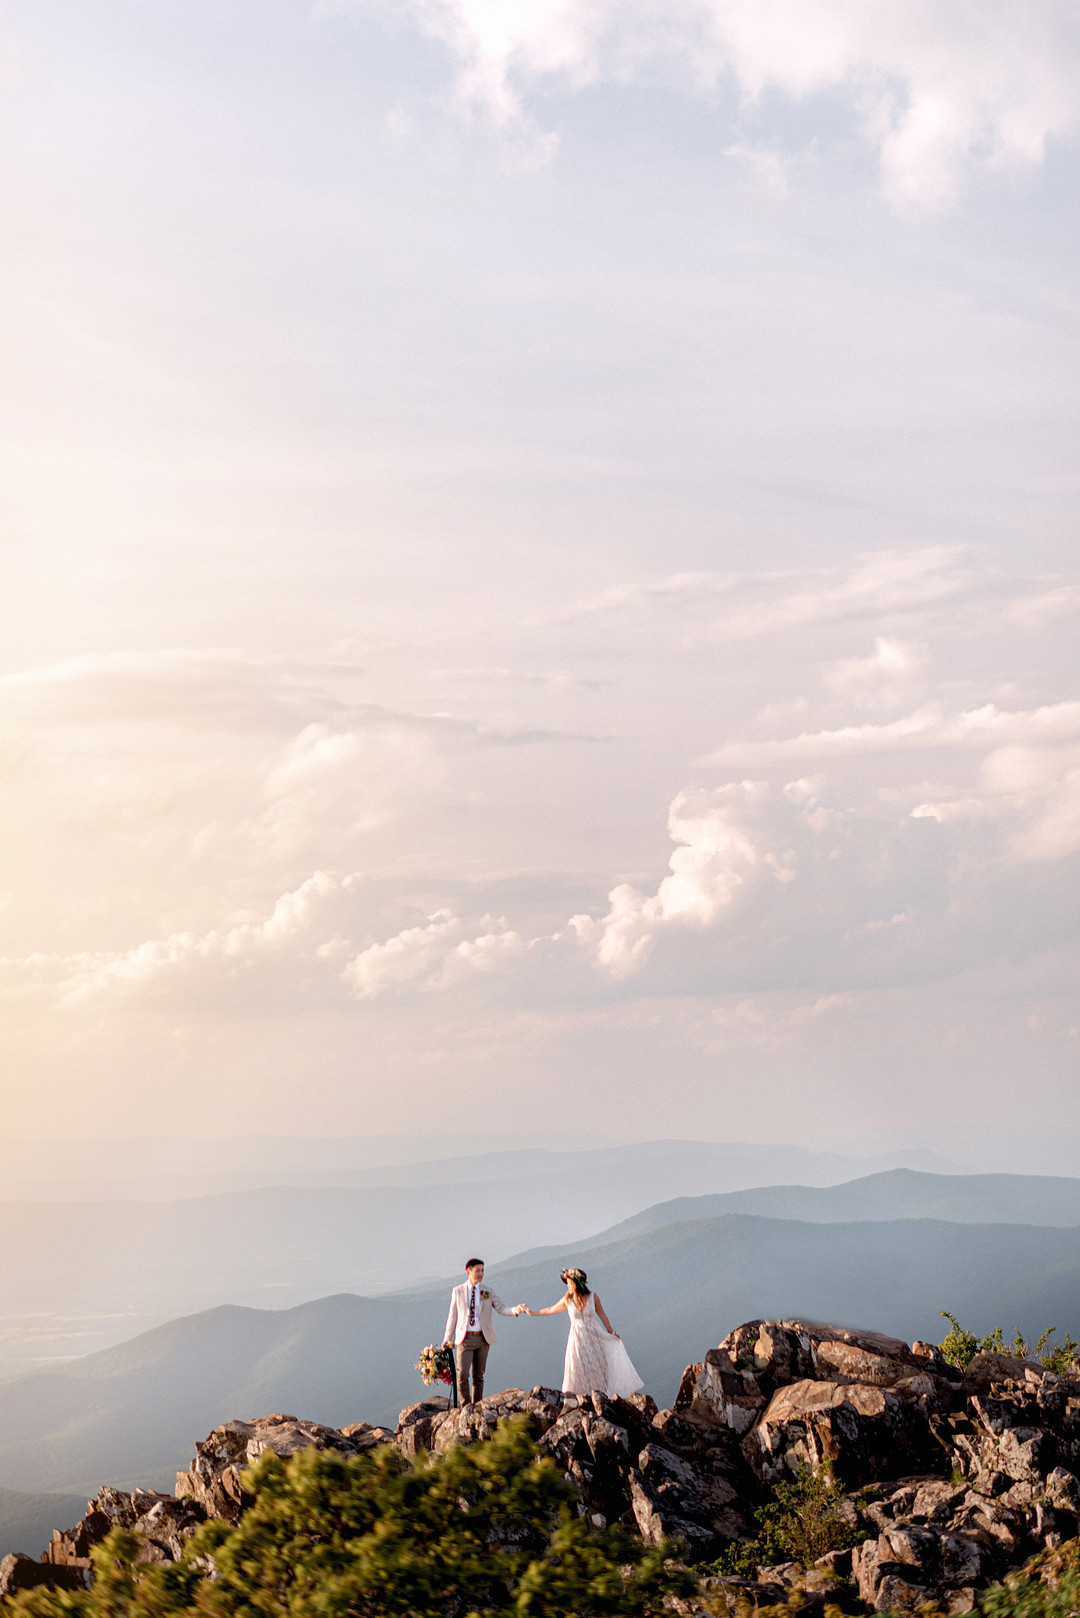 Boho Mountain Elopement in Shenandoah National Park_1001 Angles Photography_Shenandoah National Park Adventure Elopement-196_low